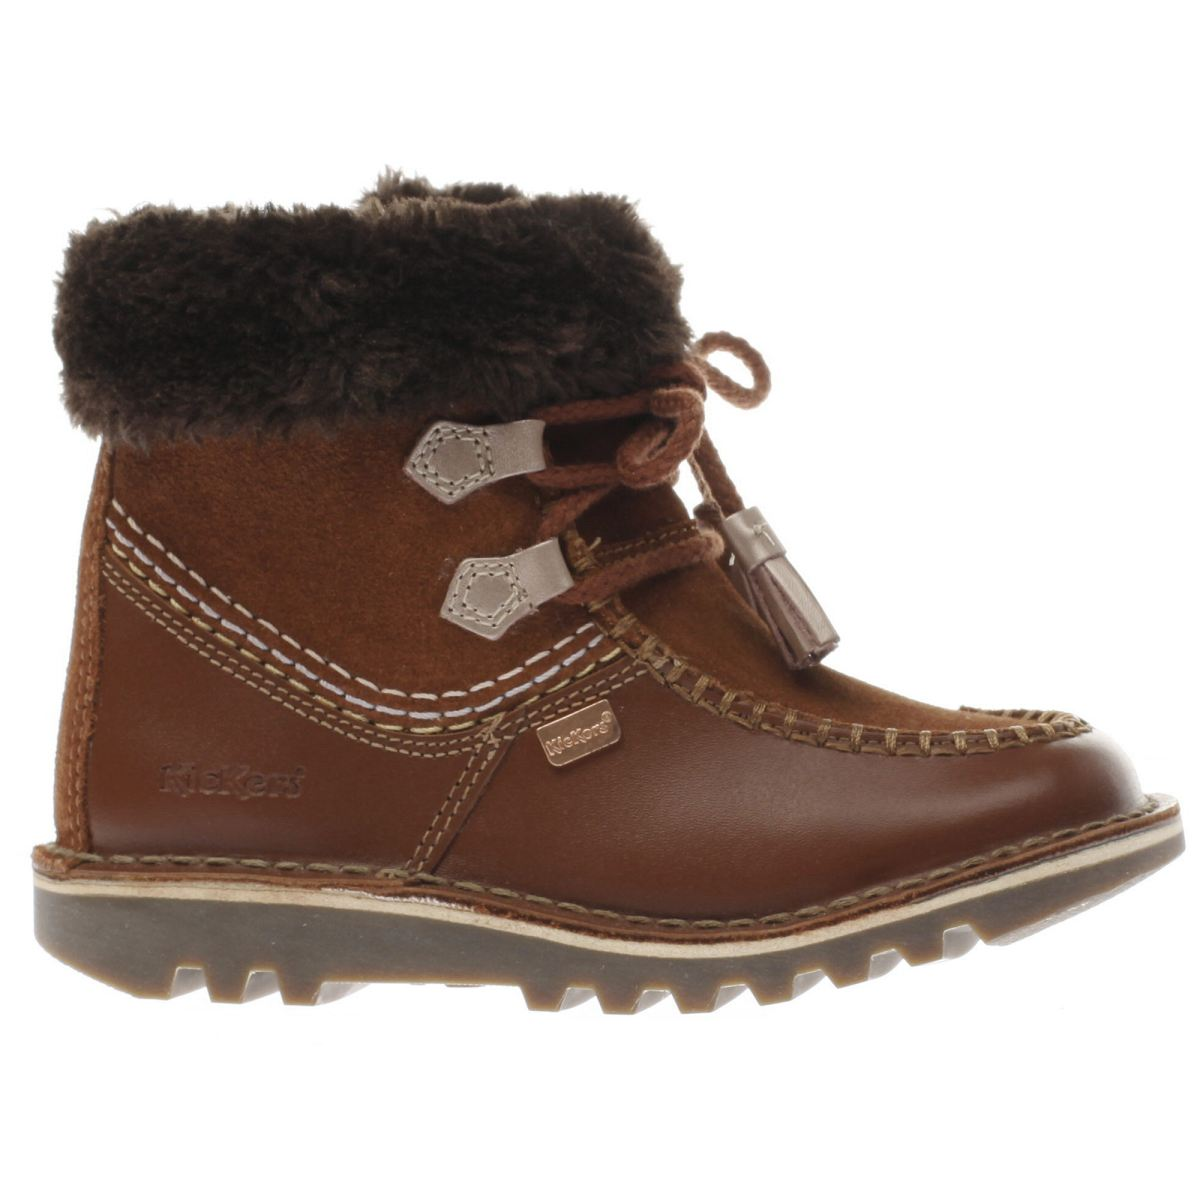 kickers brown kick fur Girls Toddler Boots